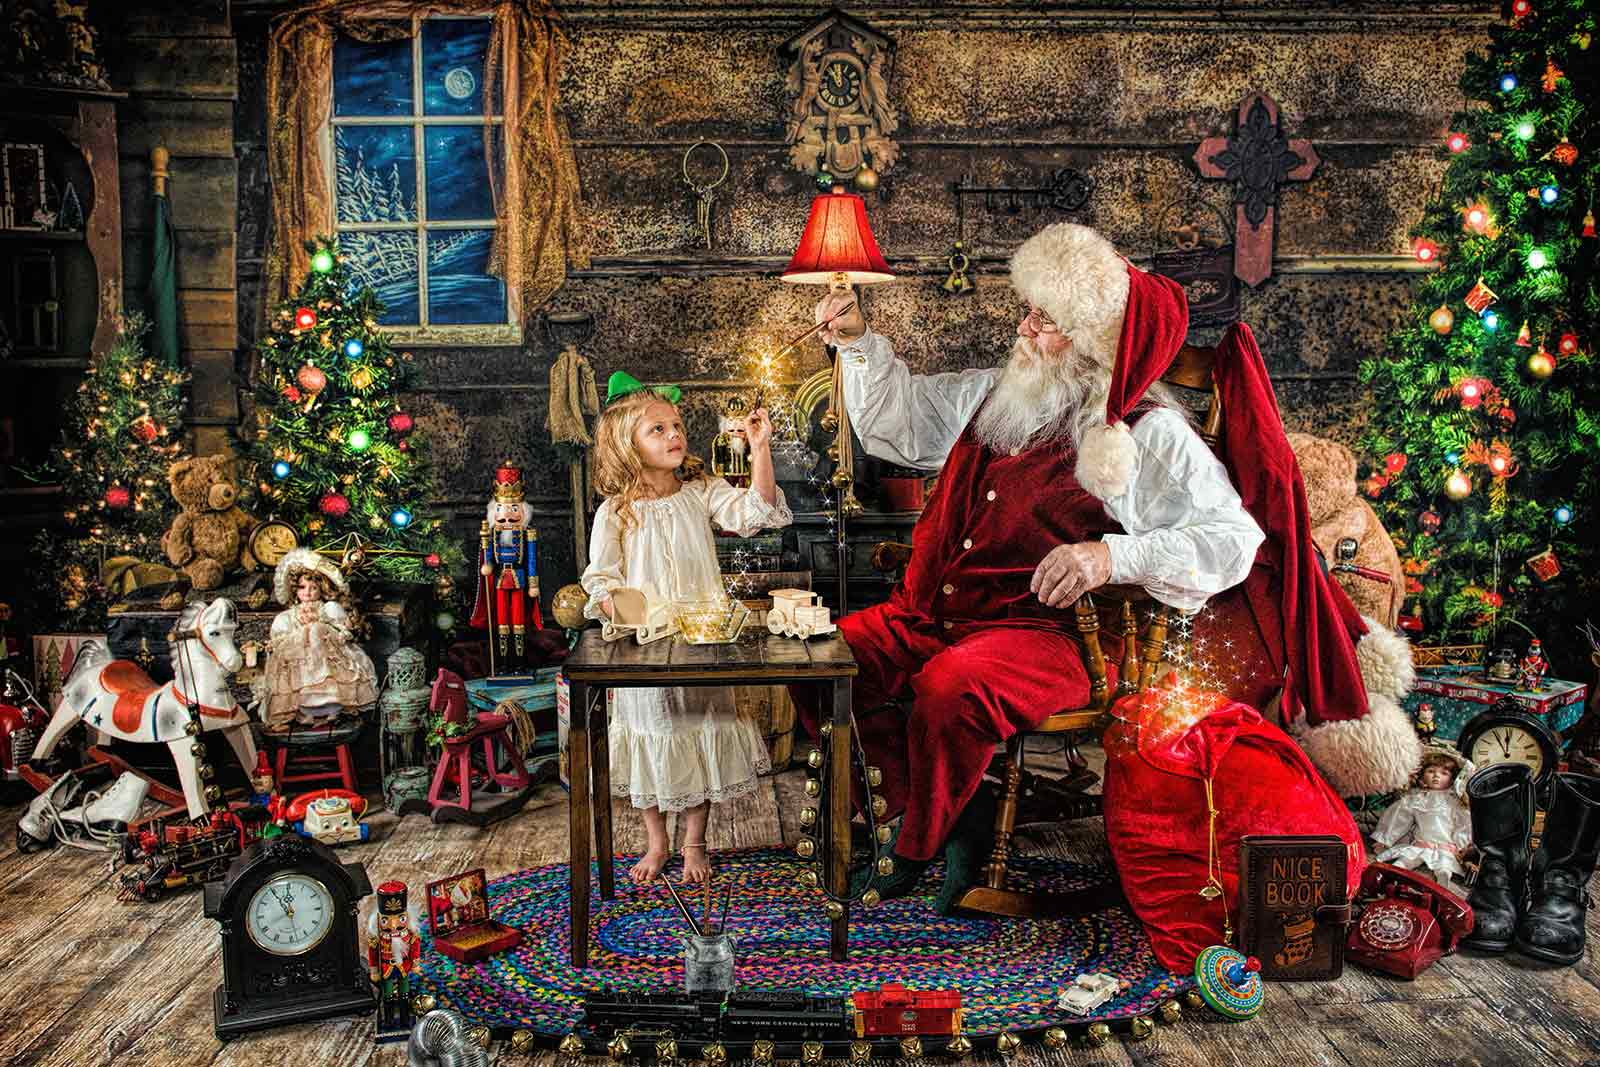 012_Magic-of-Santa-Anna-Thielen-Photography